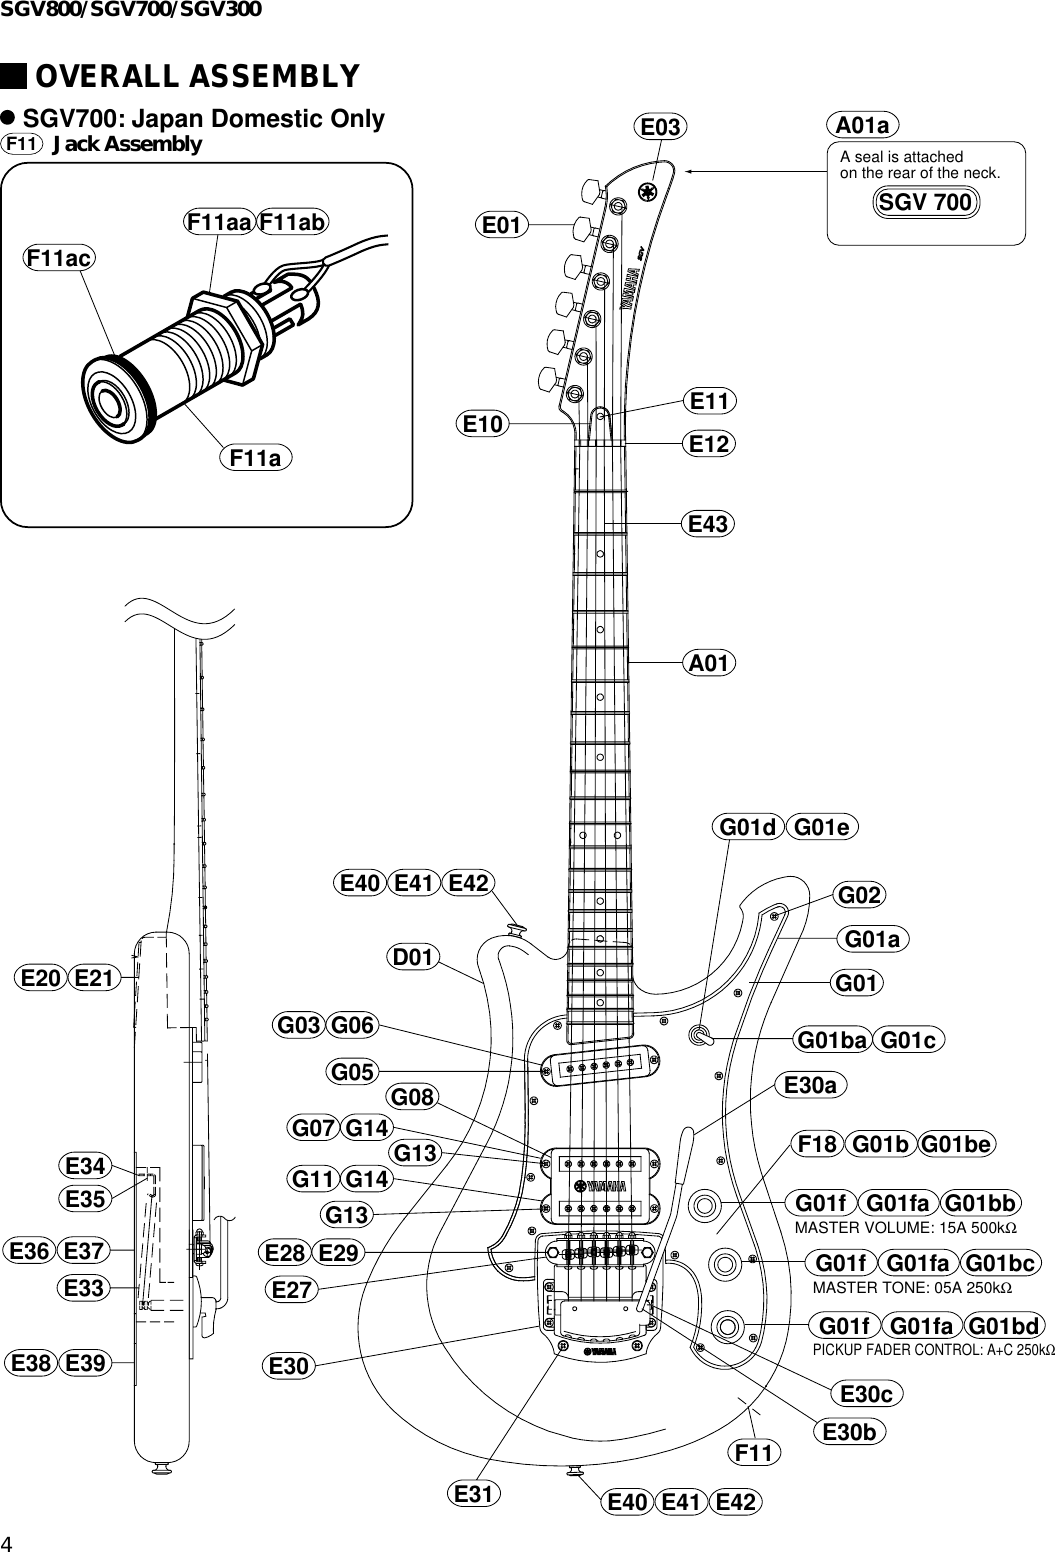 Yamaha Guitar Eg 011511 Users Manual SGV800/SGV700/SGV300